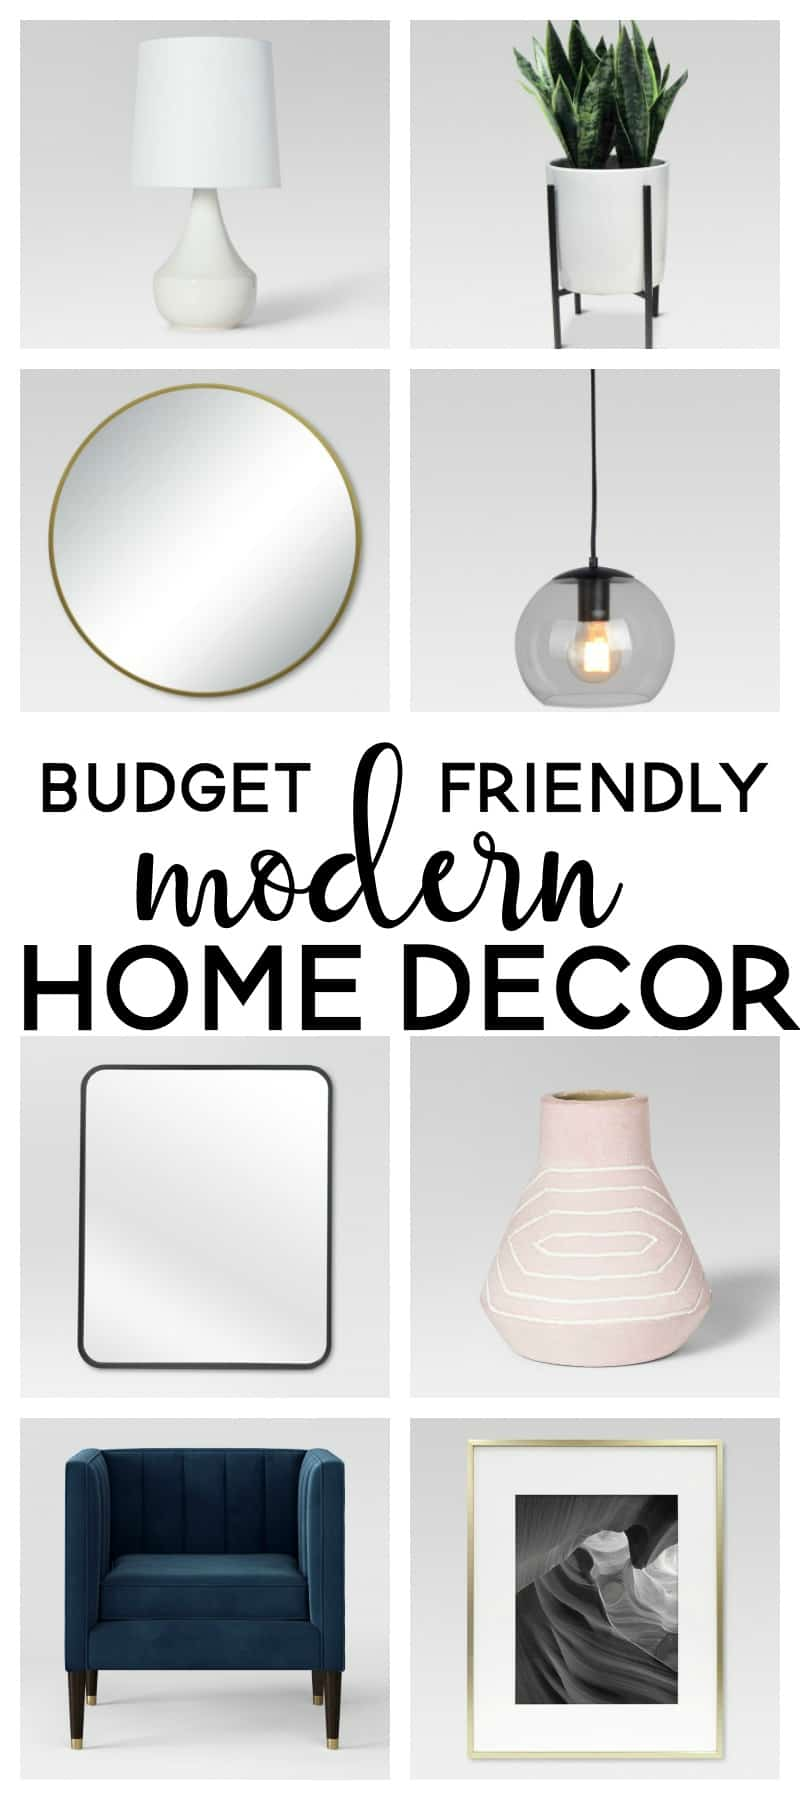 budget friendly modern home decor | project 62 | target | modern farmhouse | home decor shopping | where to buy home decor